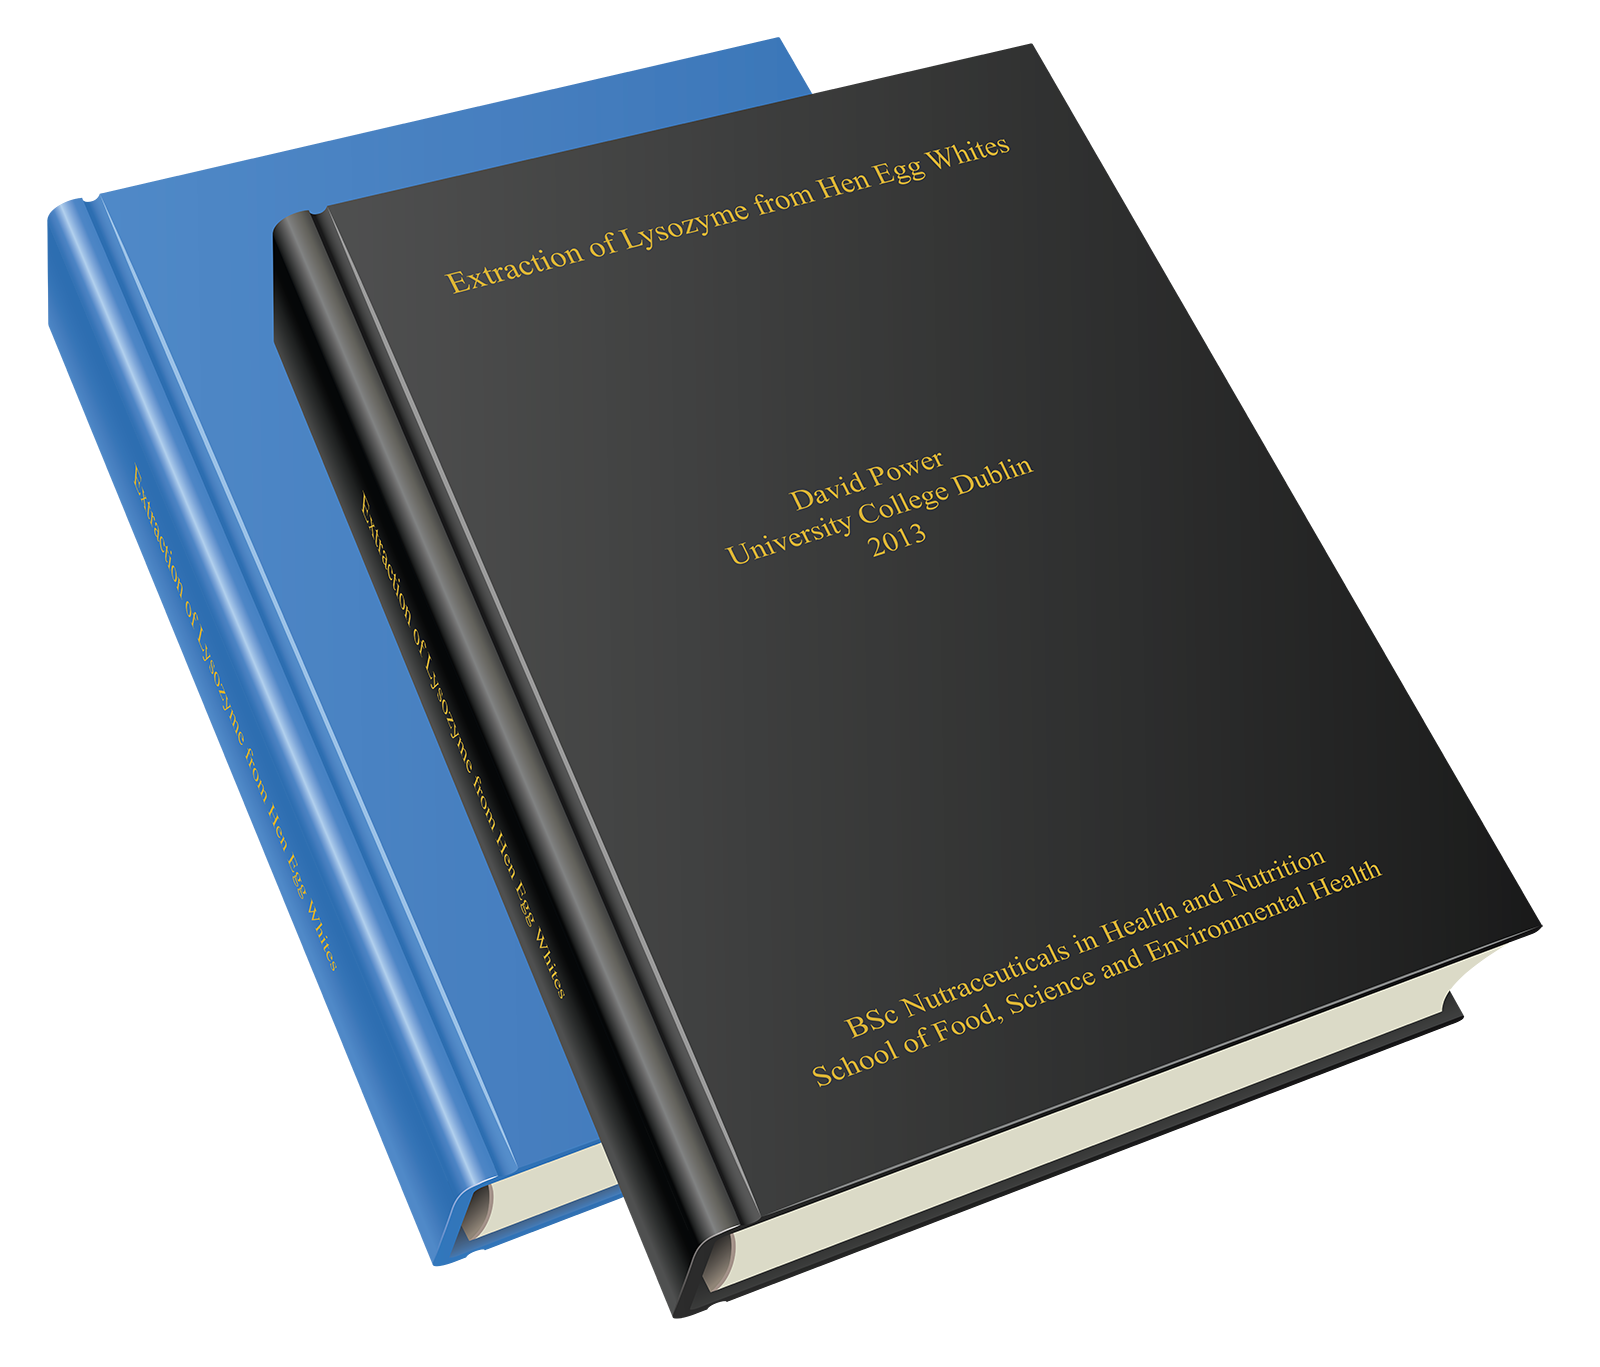 thesis printing and binding brisbane